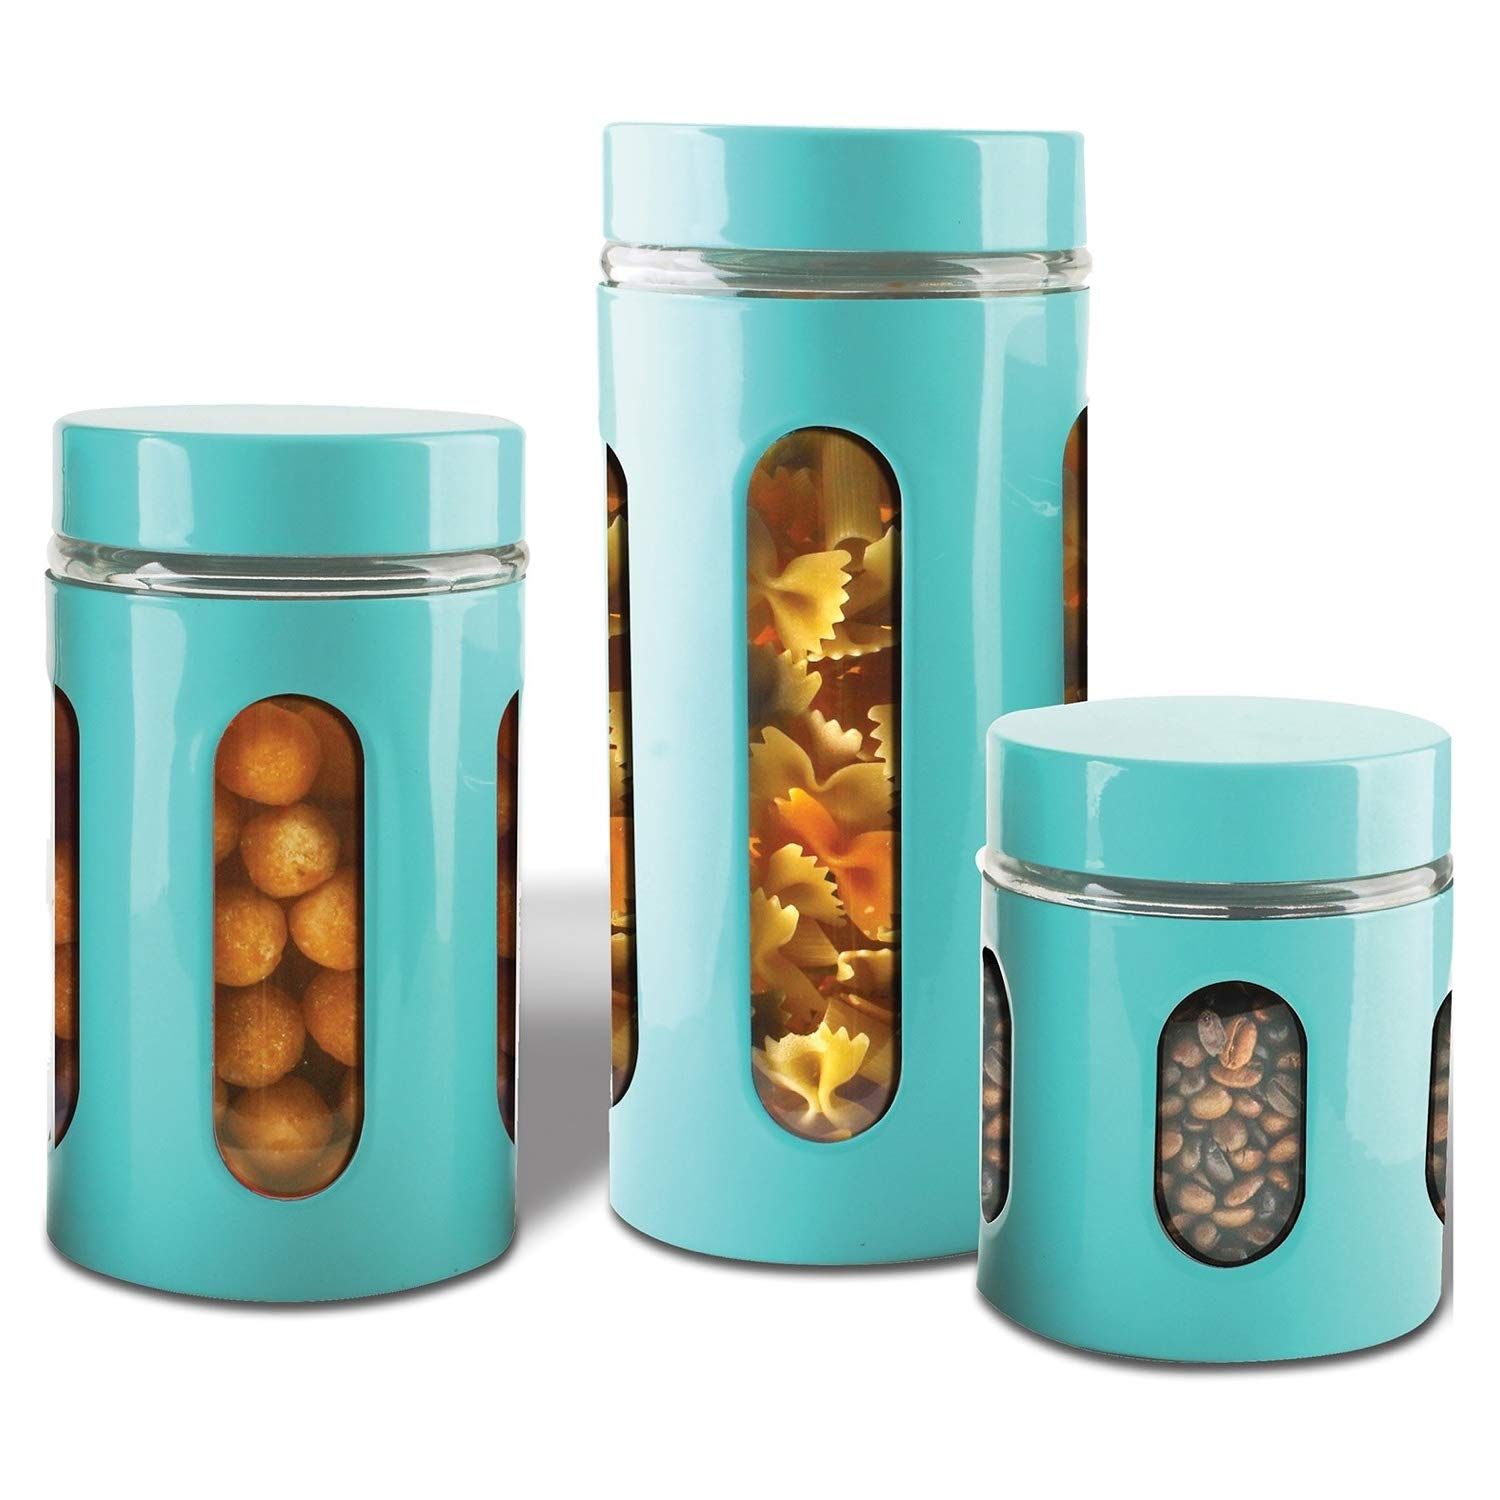 Air Tight Kitchen Canister Set By Premius 3 Piece Glass And Metal Canisters Quick Access And Space Saving Great Safe And Fresh Food Convenient Sizes Modern Design Turquoise Blue Buy Online In Andorra At